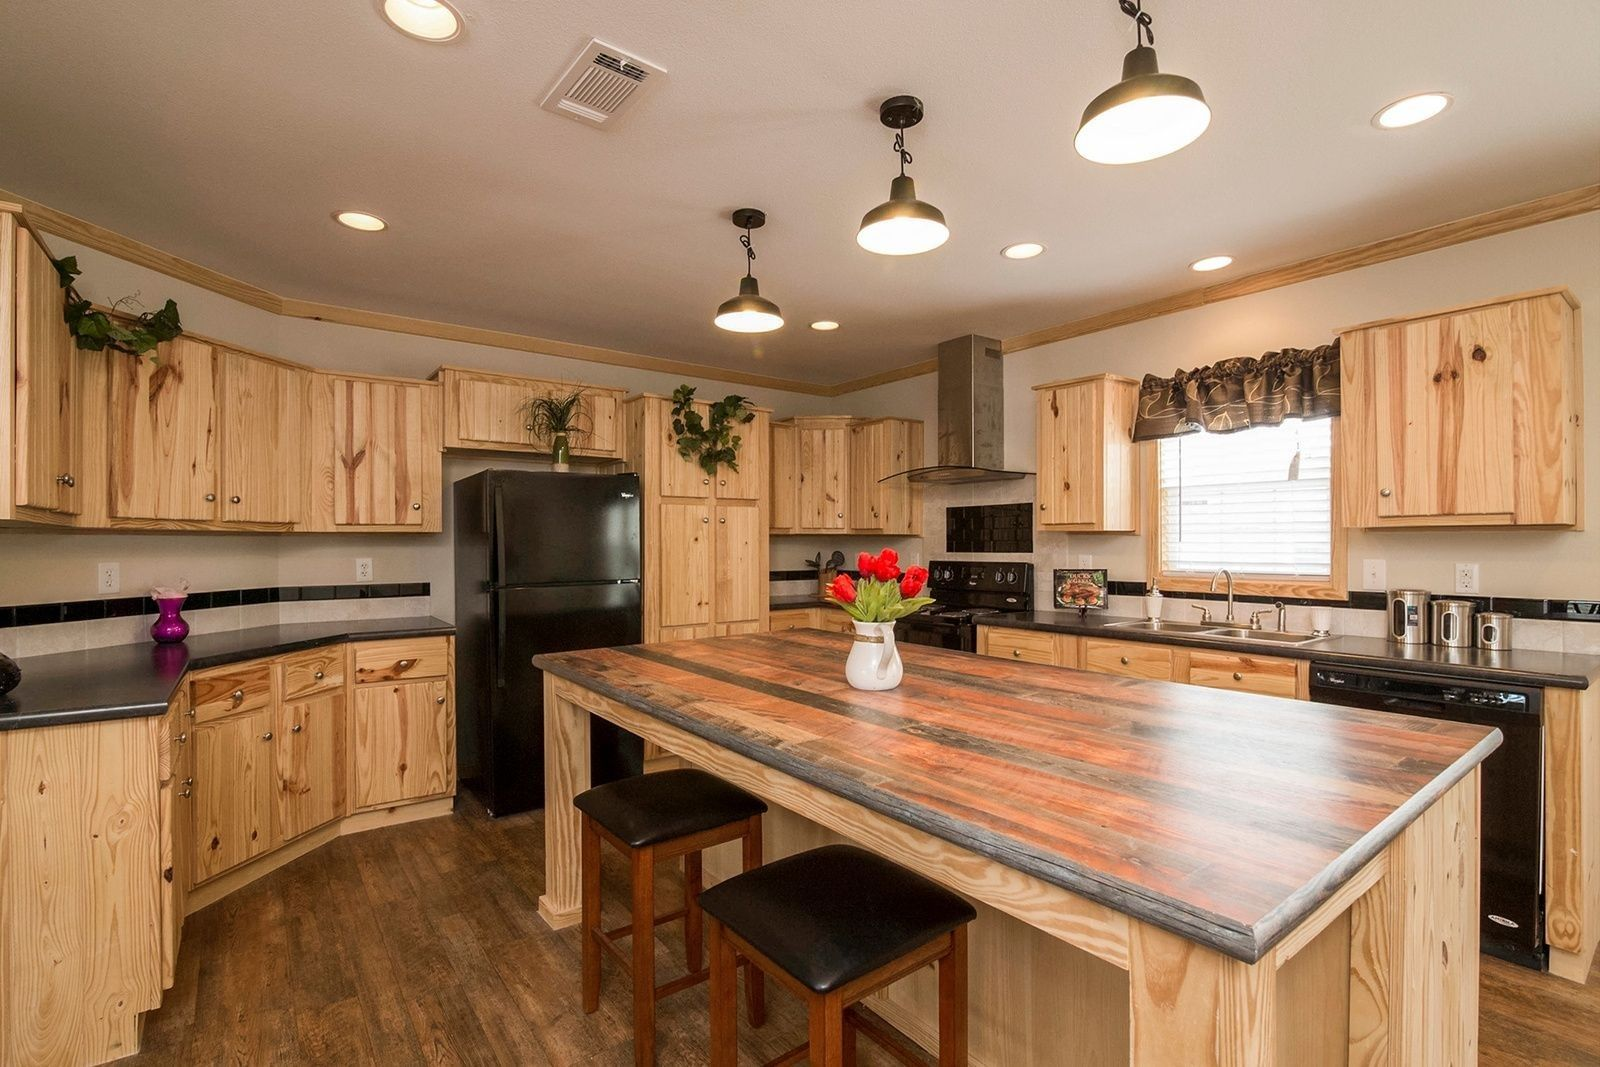 Rustic Kitchen Cabinets To Pine For Rustic Kitchen With Knotty Pine Kitchen Cabinets And Wood Accent In 2020 Pine Kitchen Cabinets Pine Kitchen Knotty Pine Cabinets